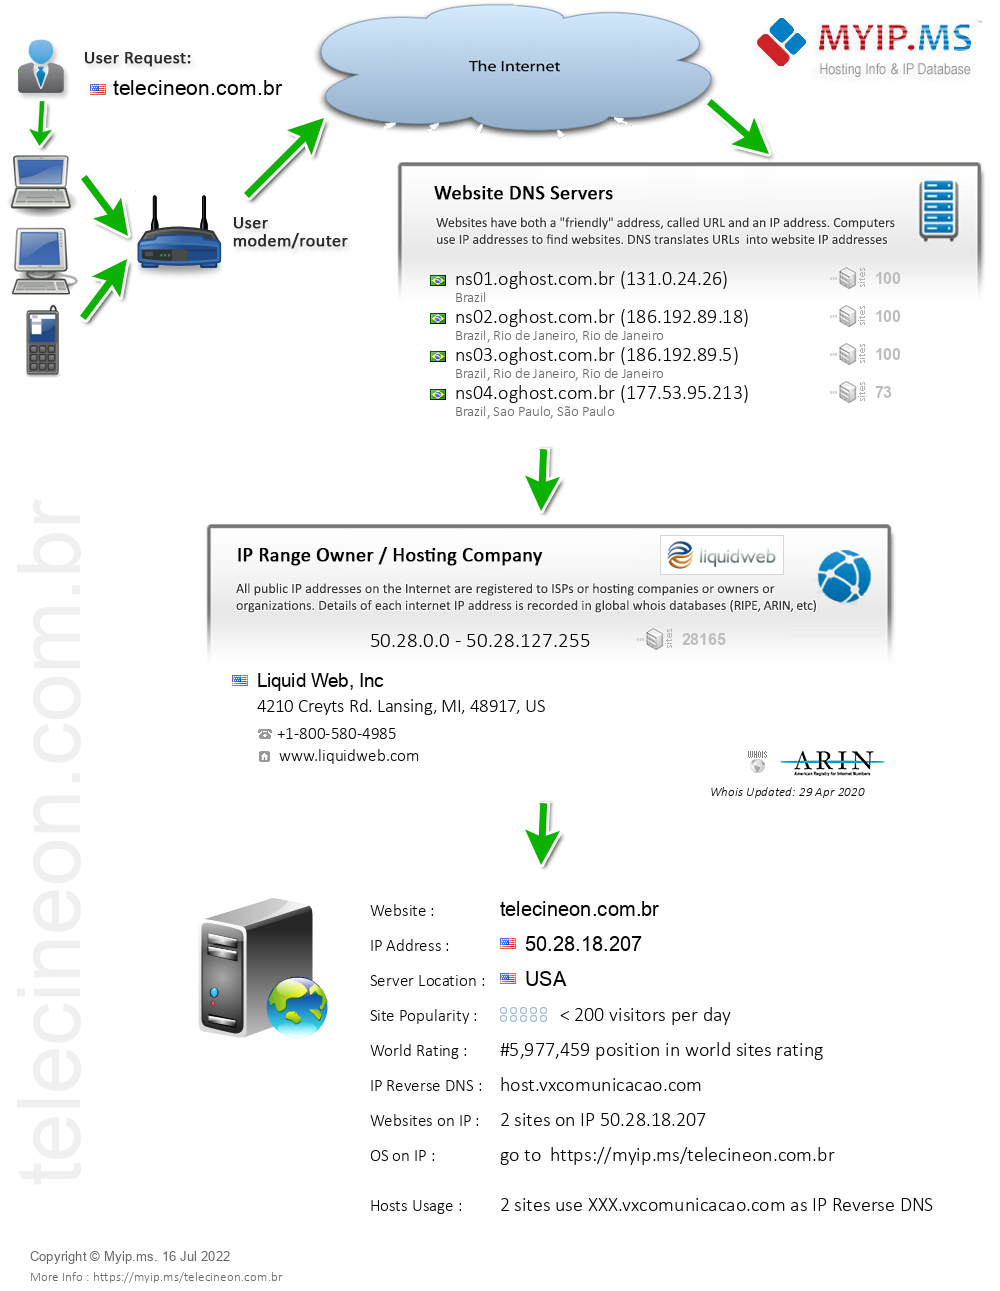 Telecineon.com.br - Website Hosting Visual IP Diagram